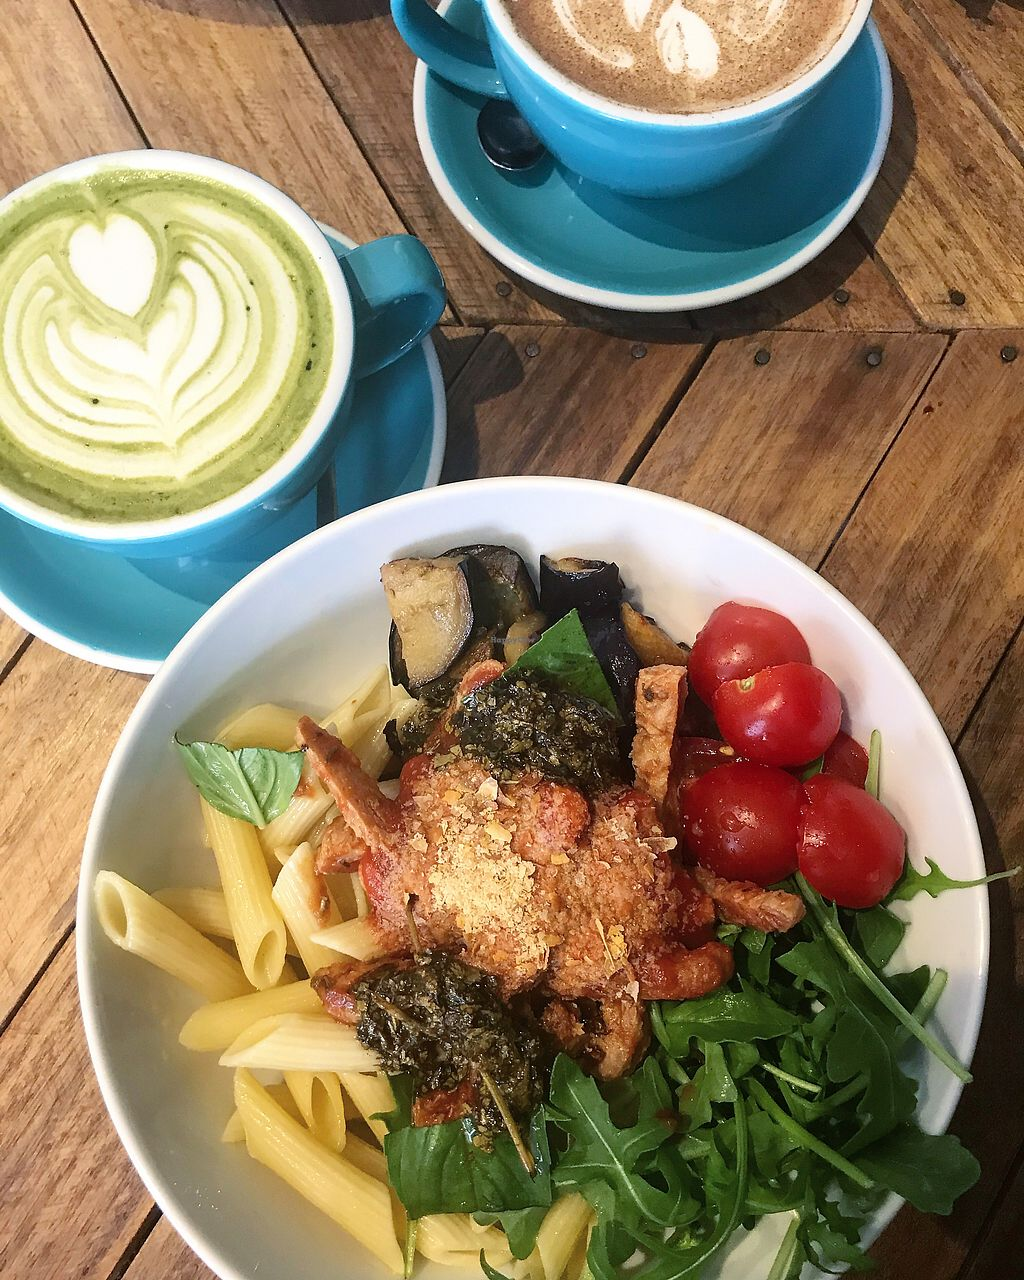 """Photo of Le Labo  by <a href=""""/members/profile/MusicalVeggie"""">MusicalVeggie</a> <br/> Daily Buddha bowl and matcha latte (oat milk) <br/> September 16, 2017  - <a href='/contact/abuse/image/100827/304939'>Report</a>"""